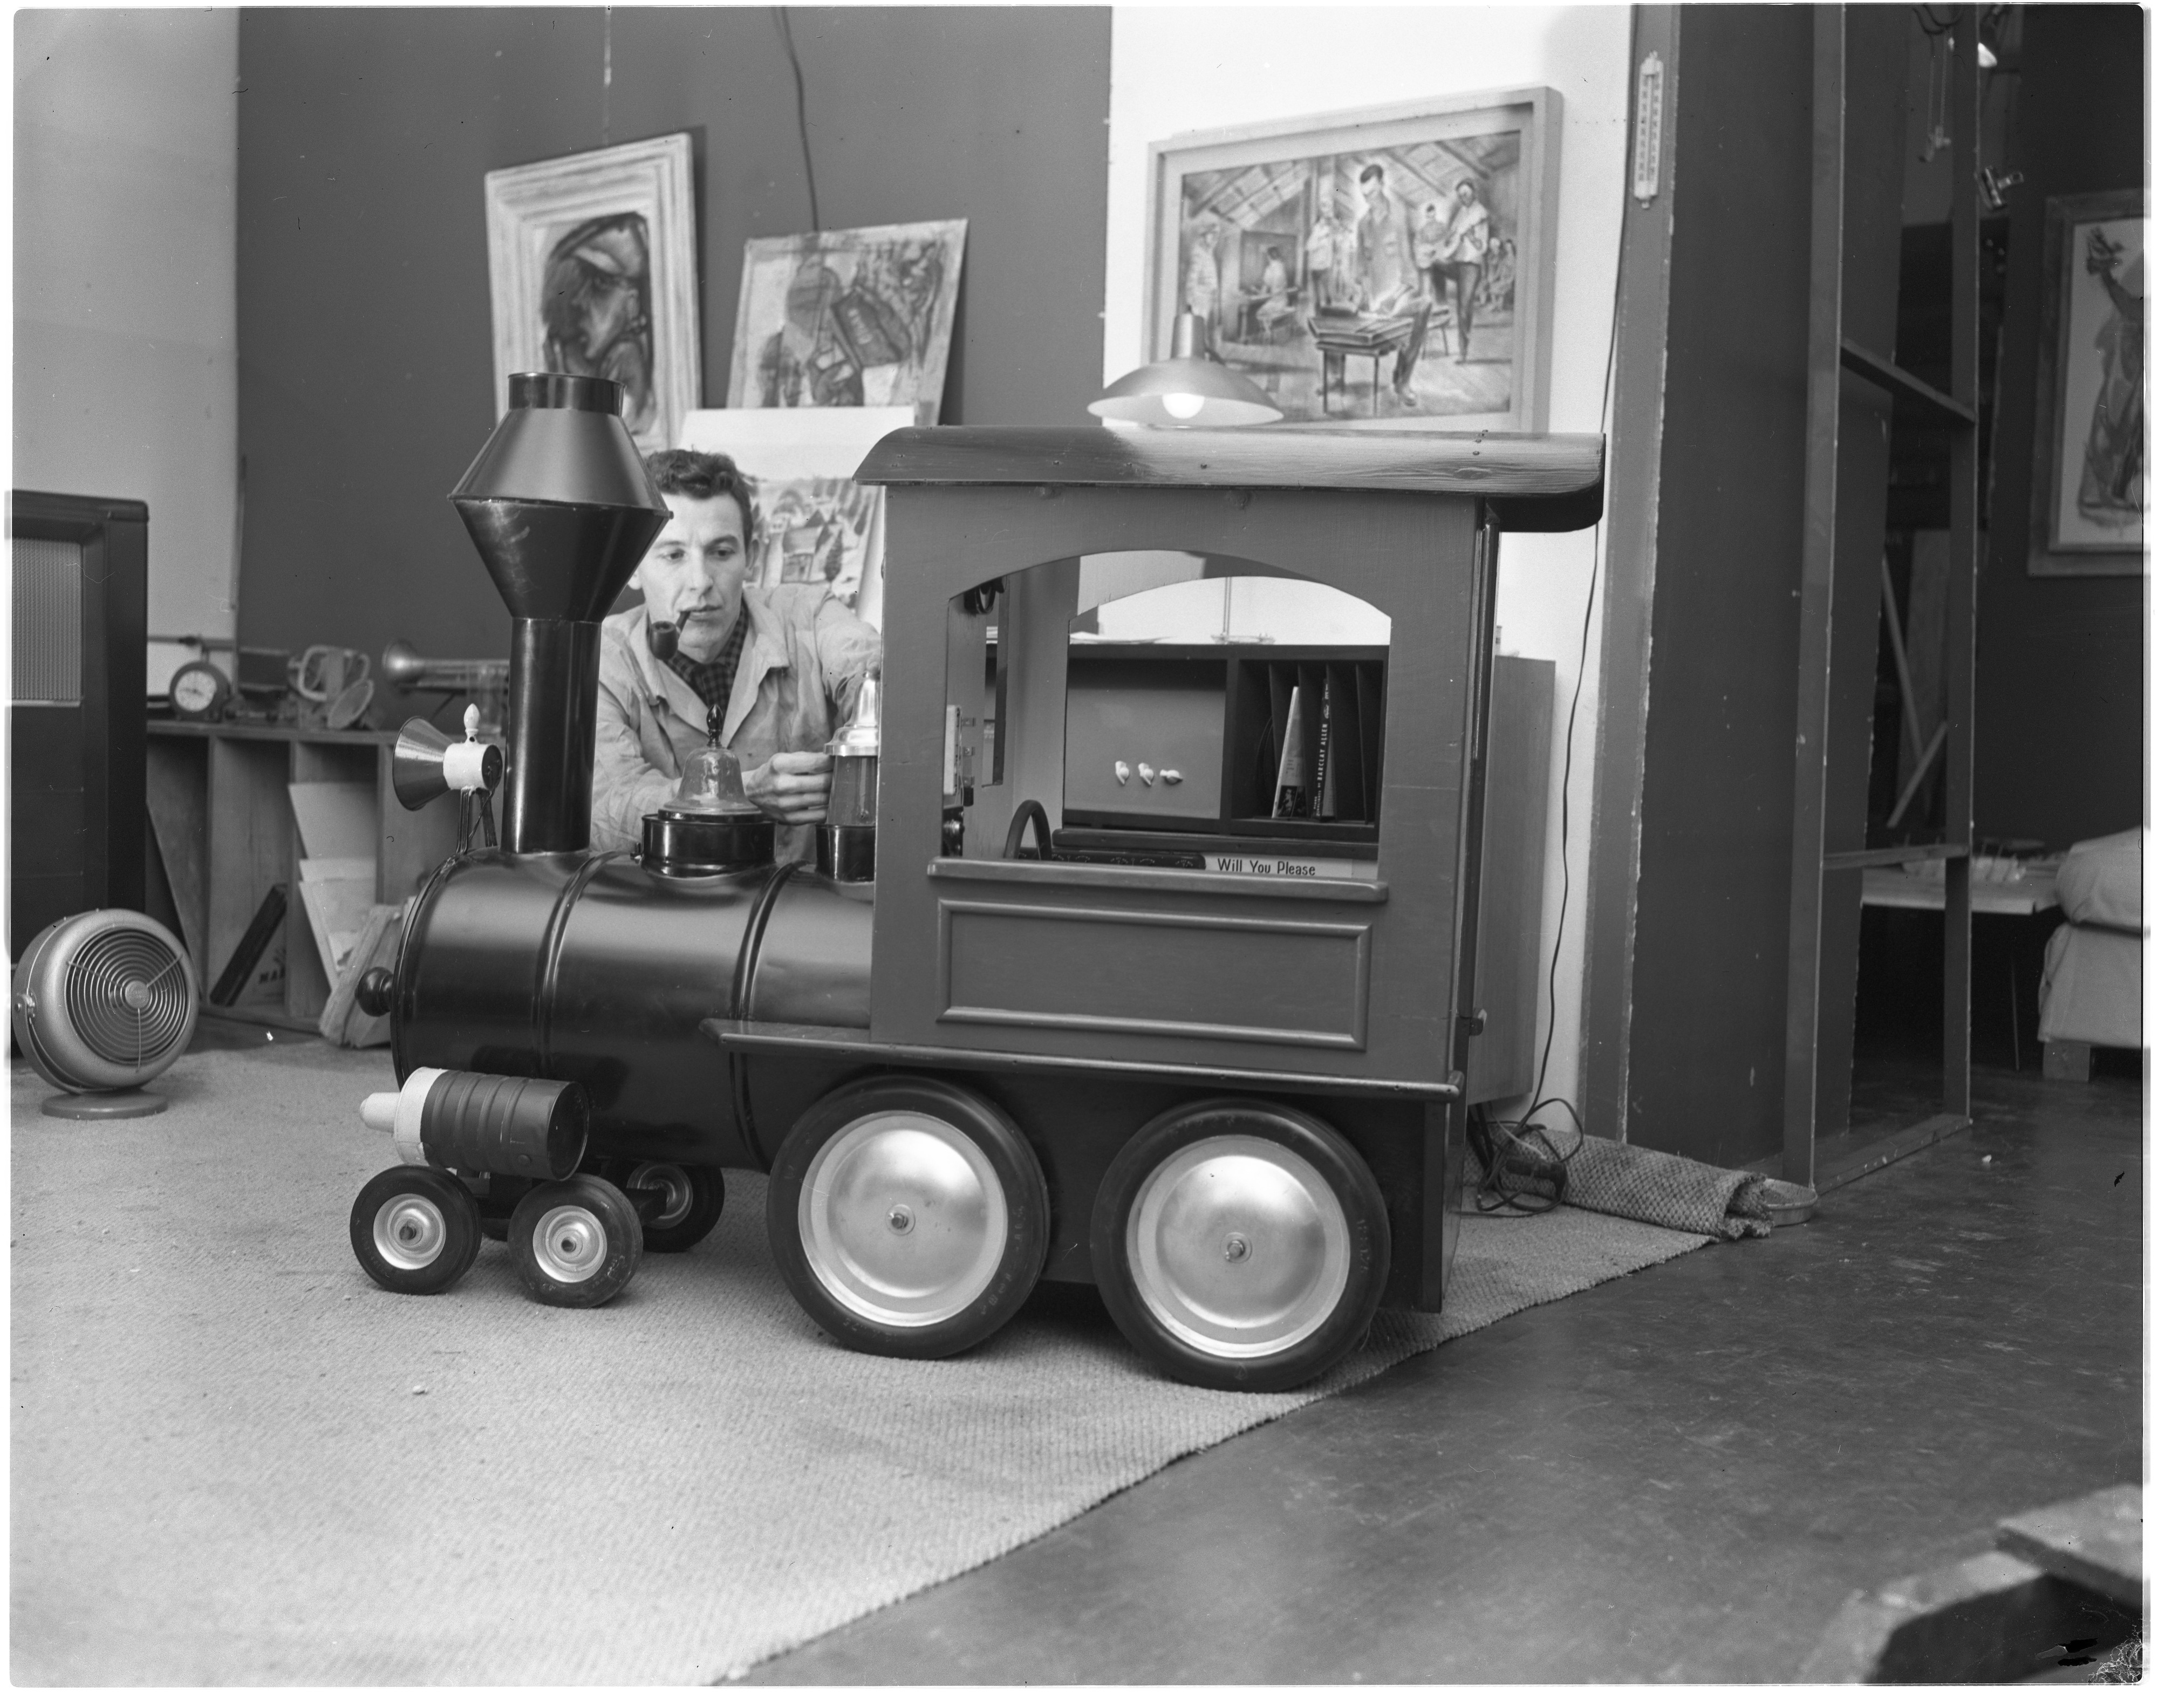 C. William Moss Demonstrating Handmade Locomotive, December 1955 image